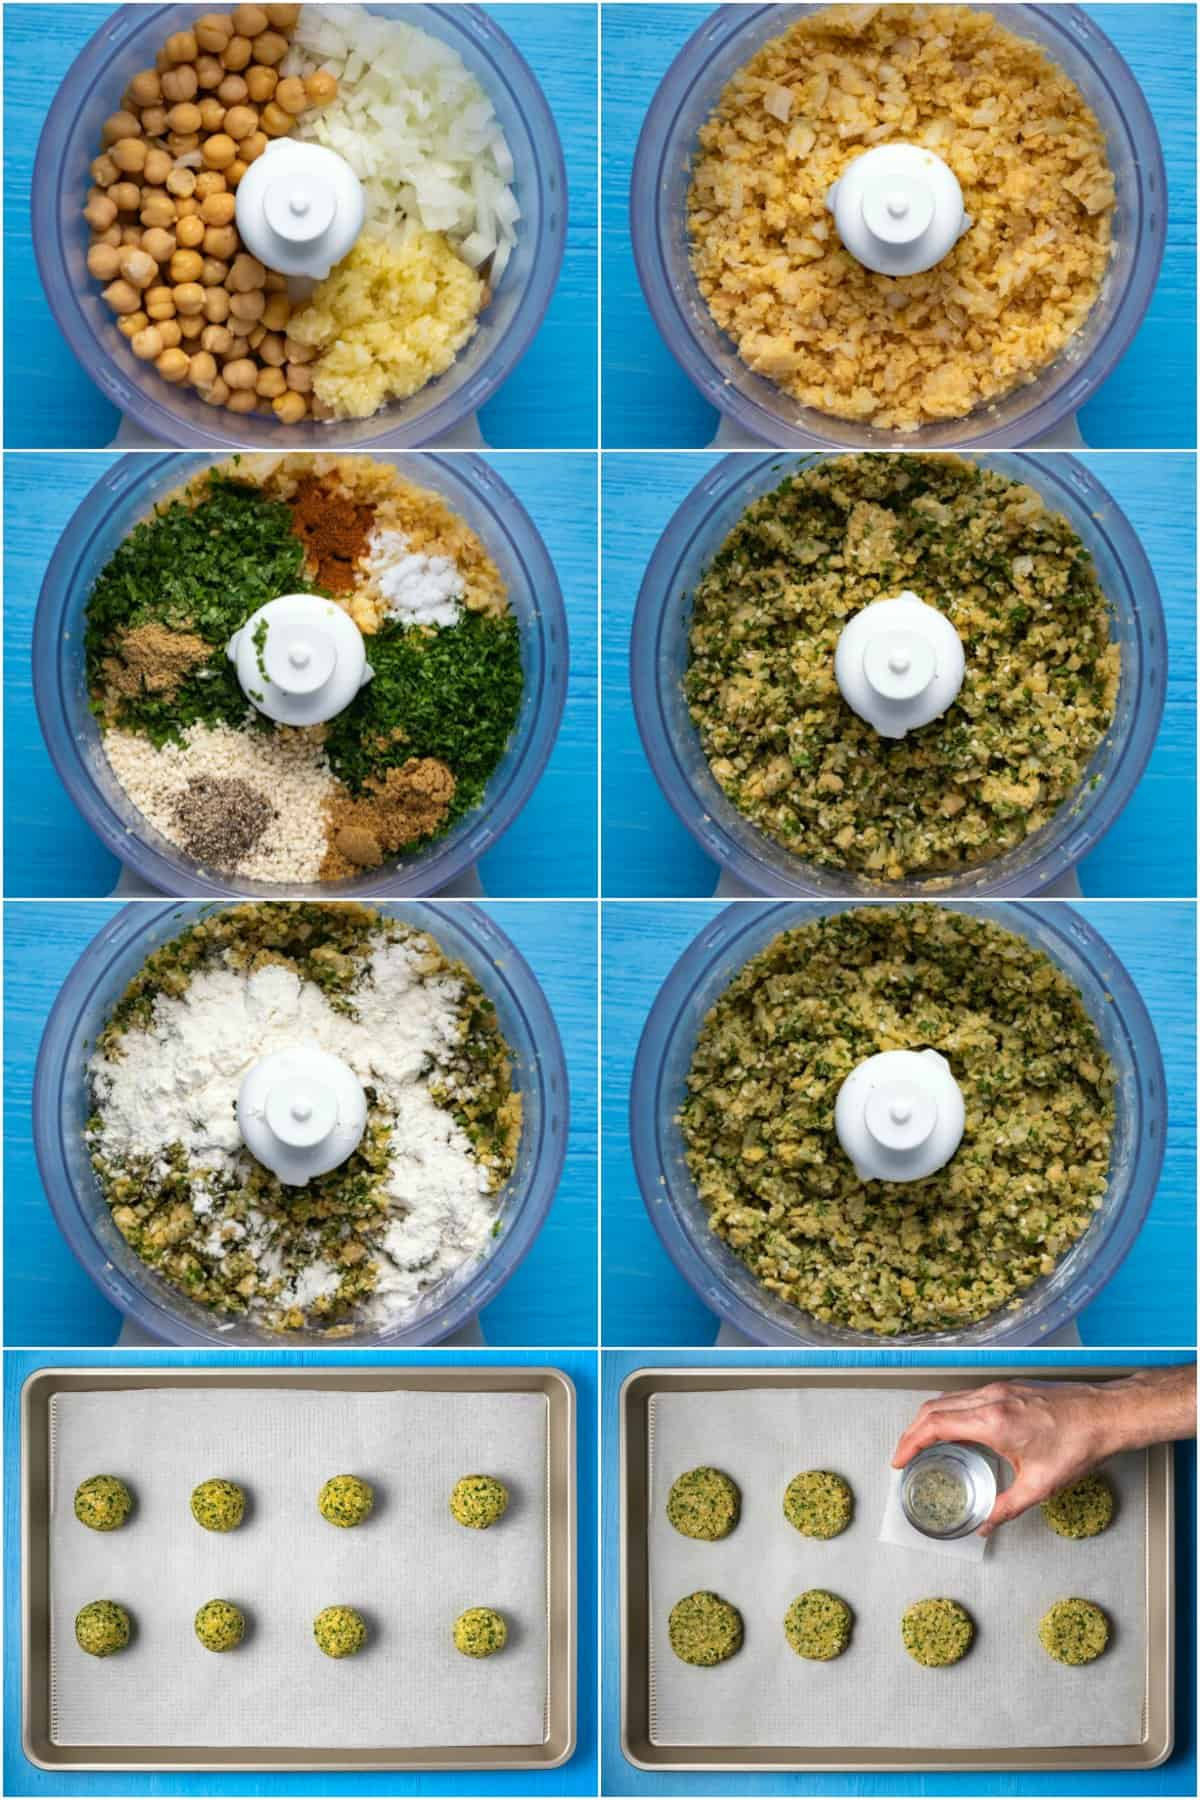 Step by step process photo collage of making falafel.